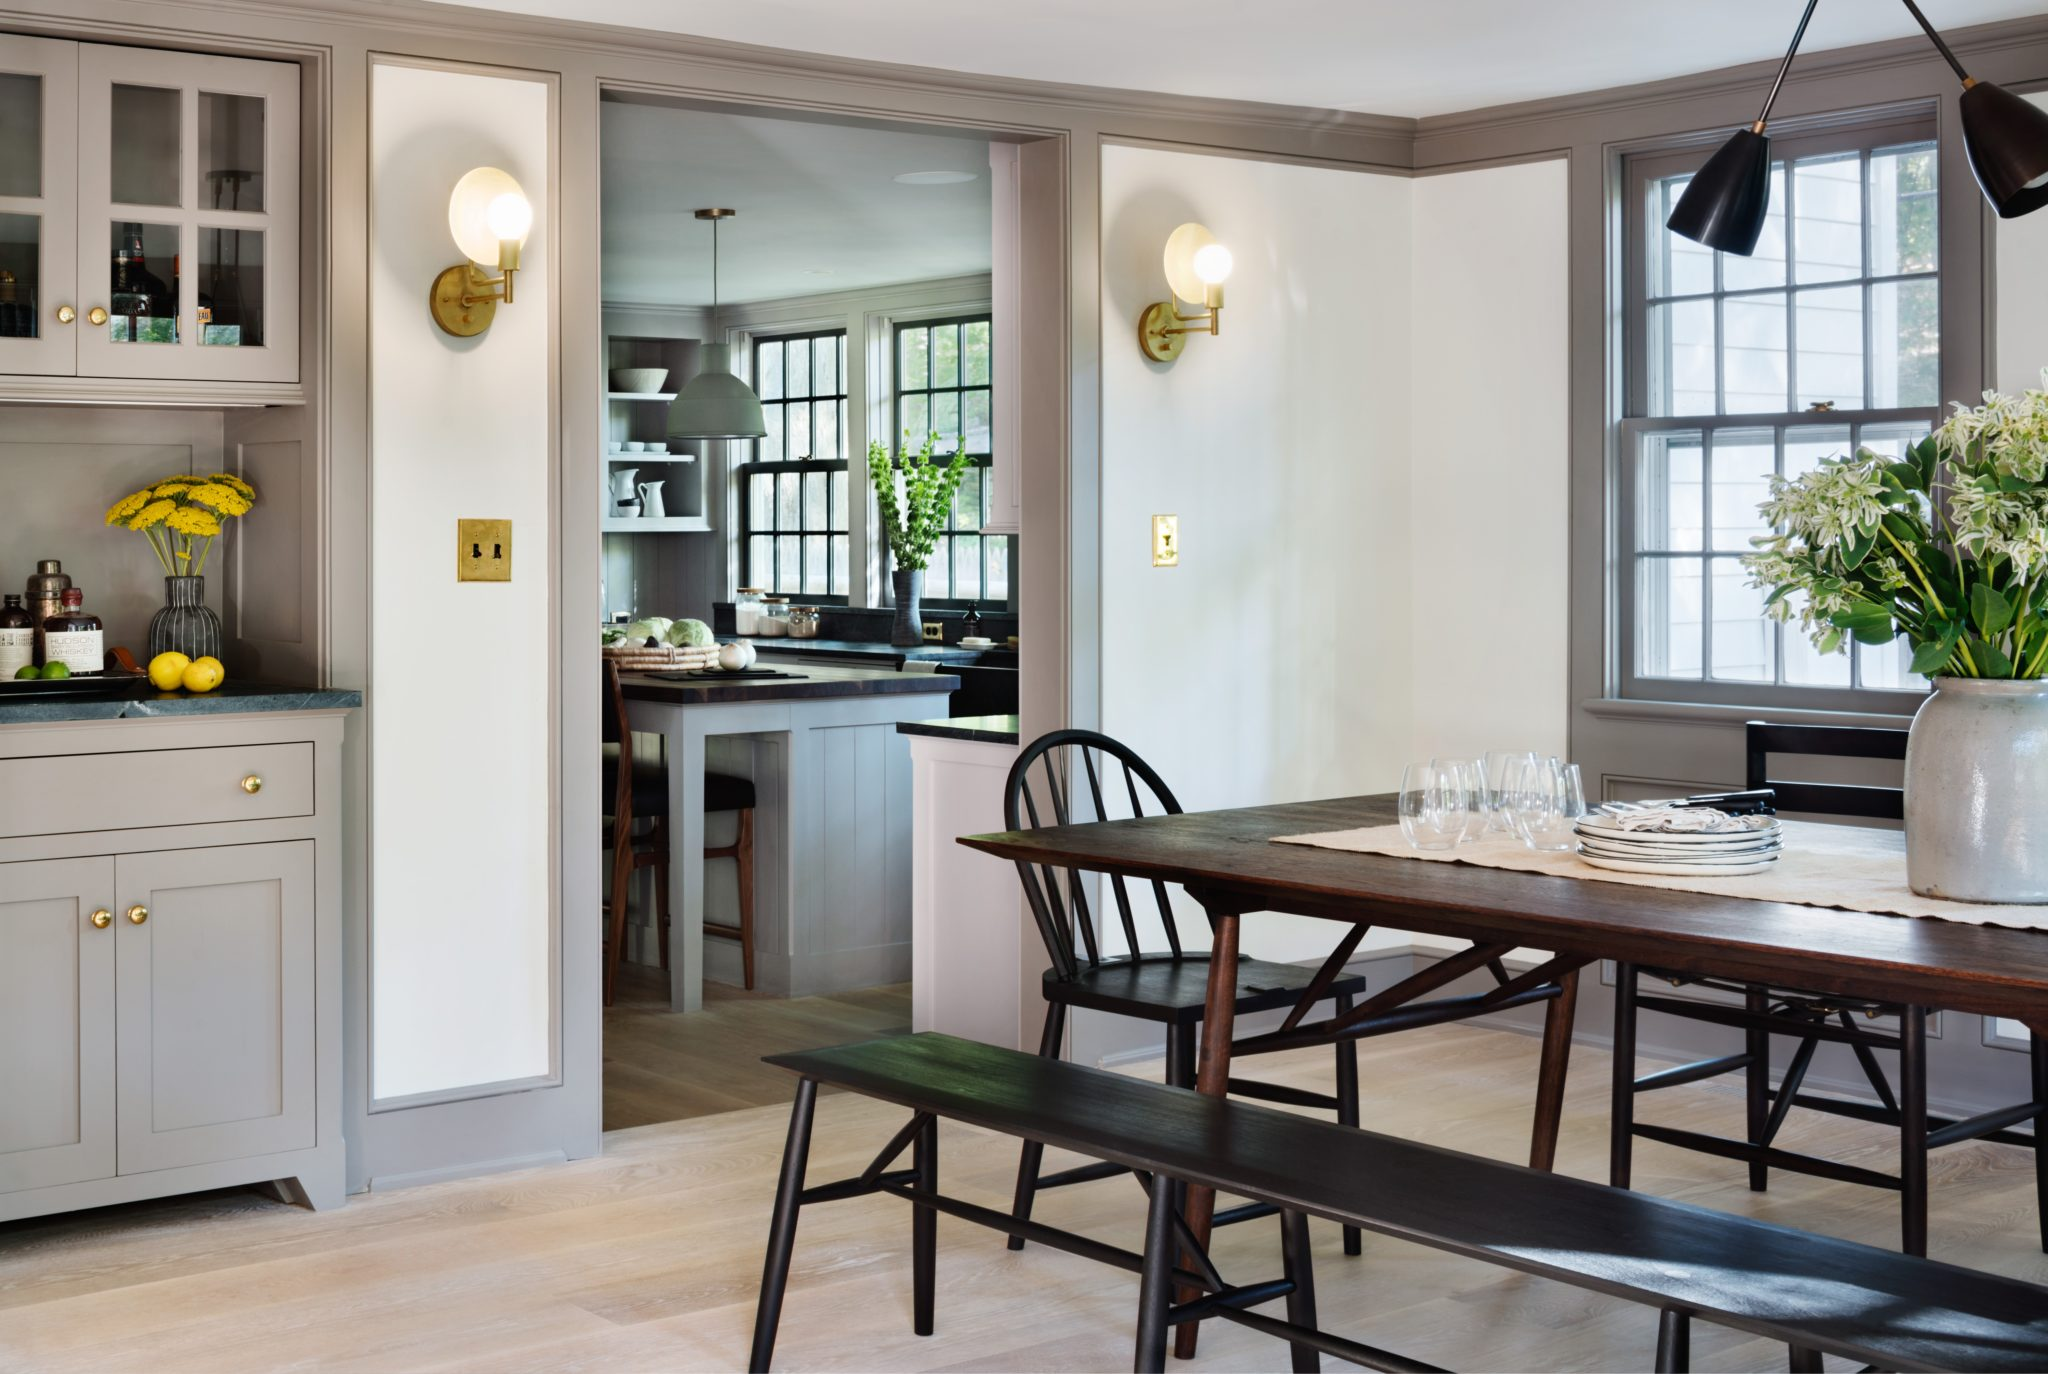 A view from the dining room into the kitchen; the sconces are by Workstead.